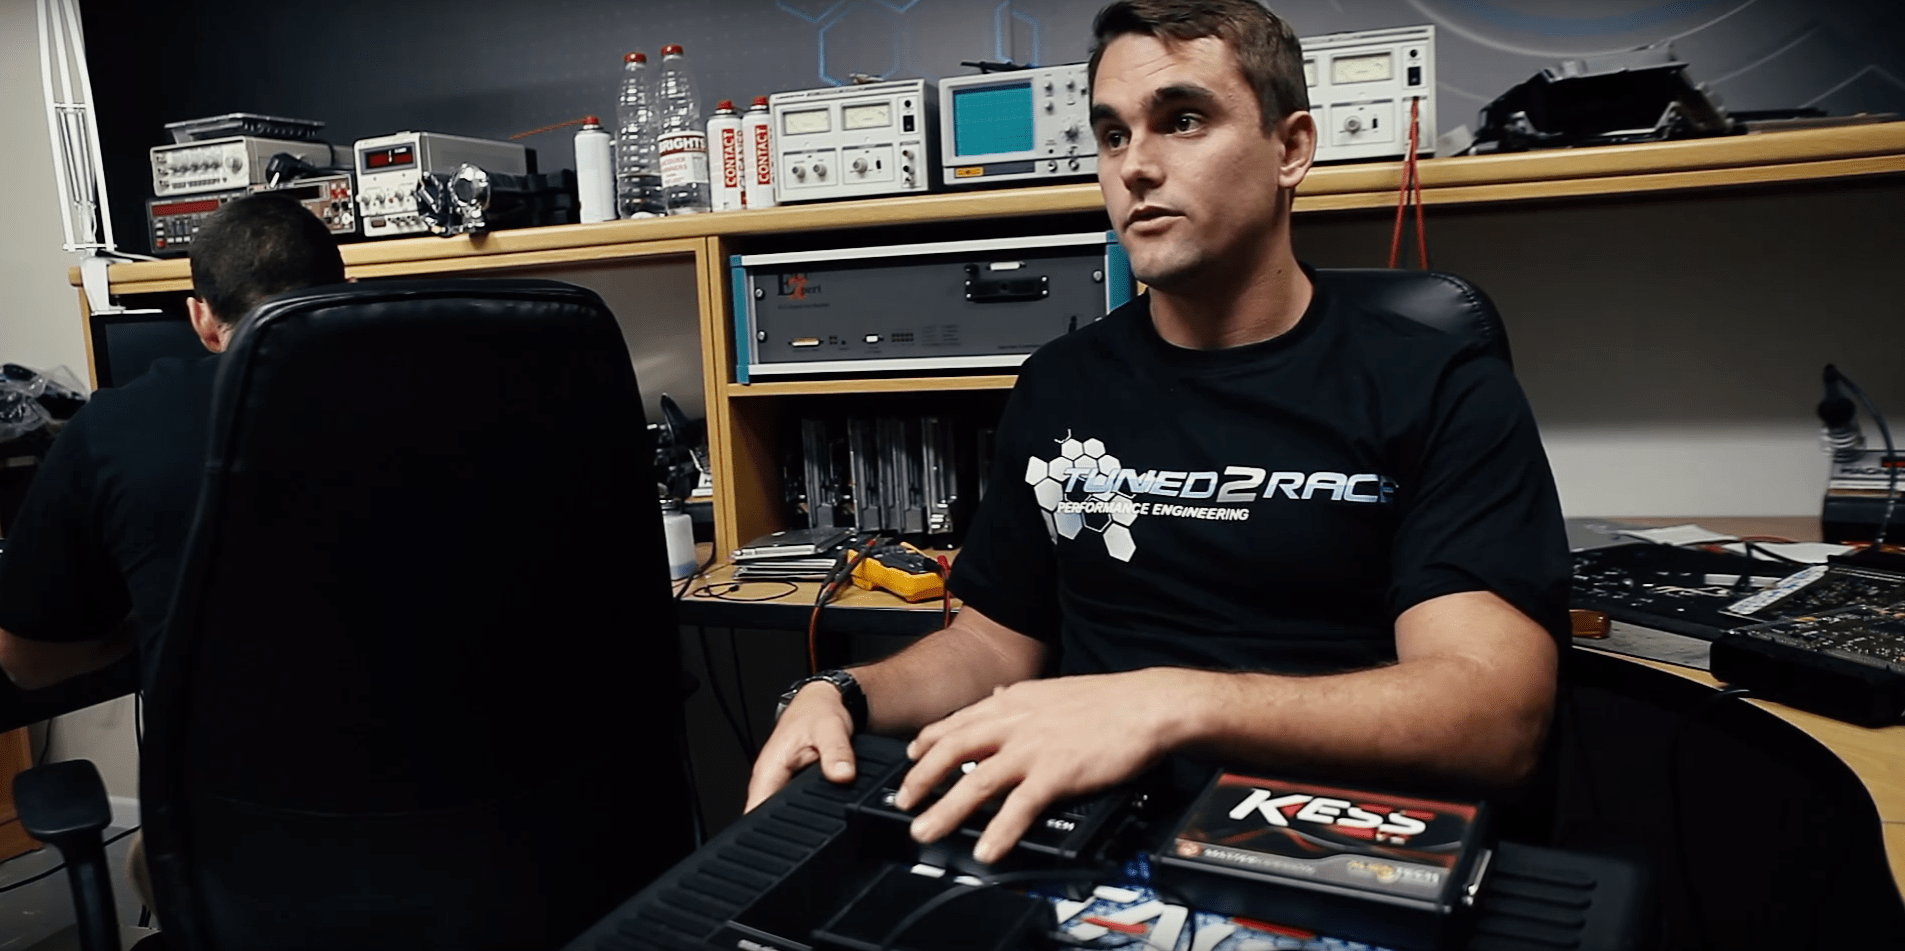 Become a Dealer | Performance Tuning Business | Tuned2Race